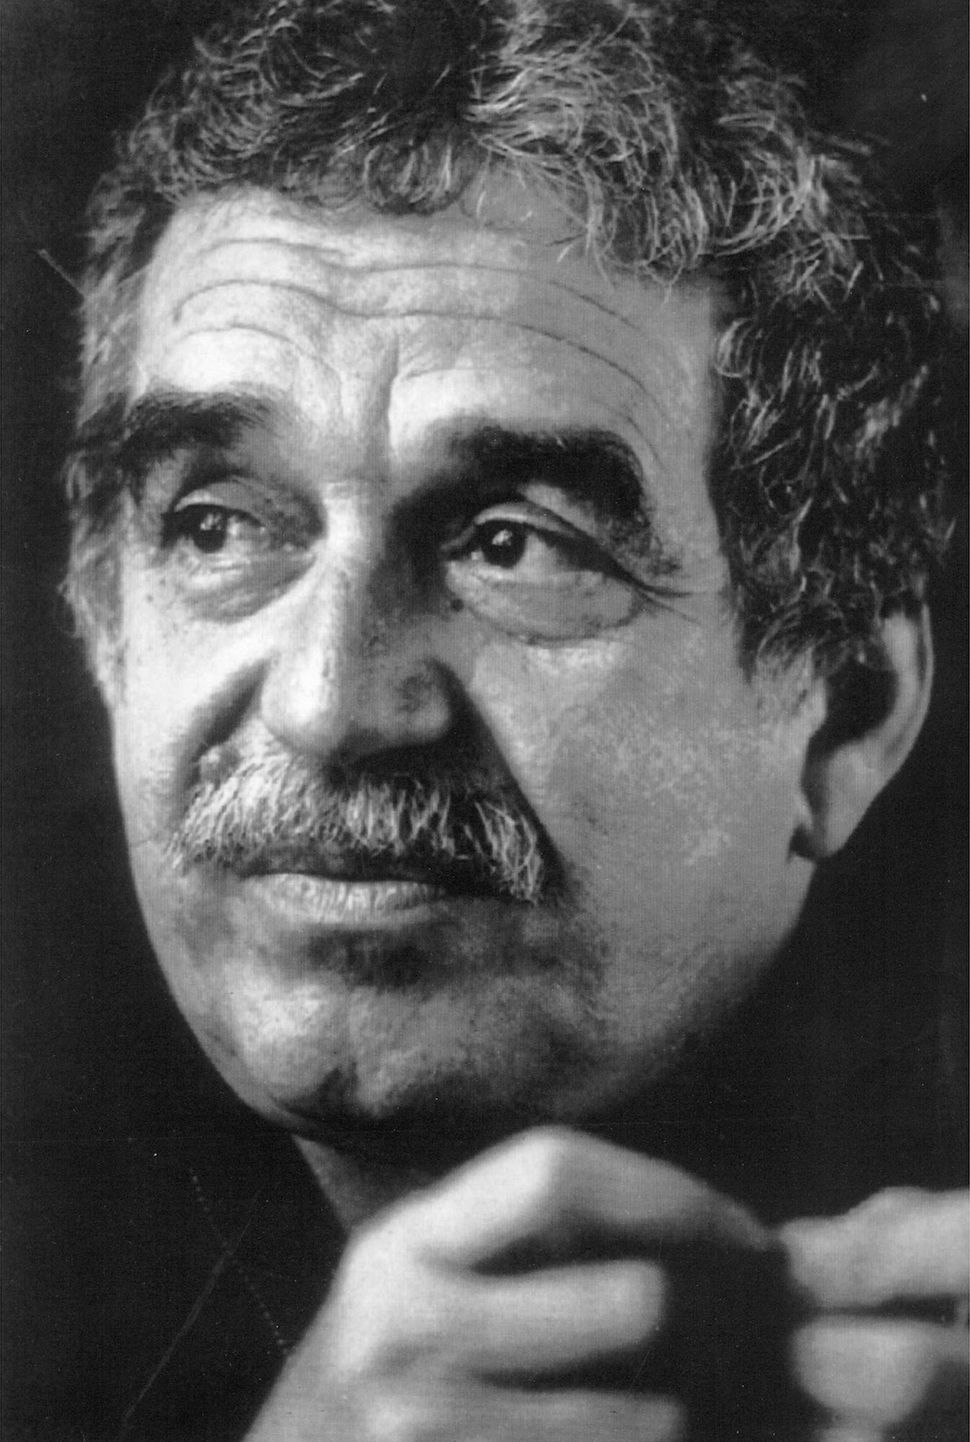 Gabriel Garcia Marquez, Nobel Prize-winning athor, seen in this 1982 file photo, had a cancerous tumor removed from his lung